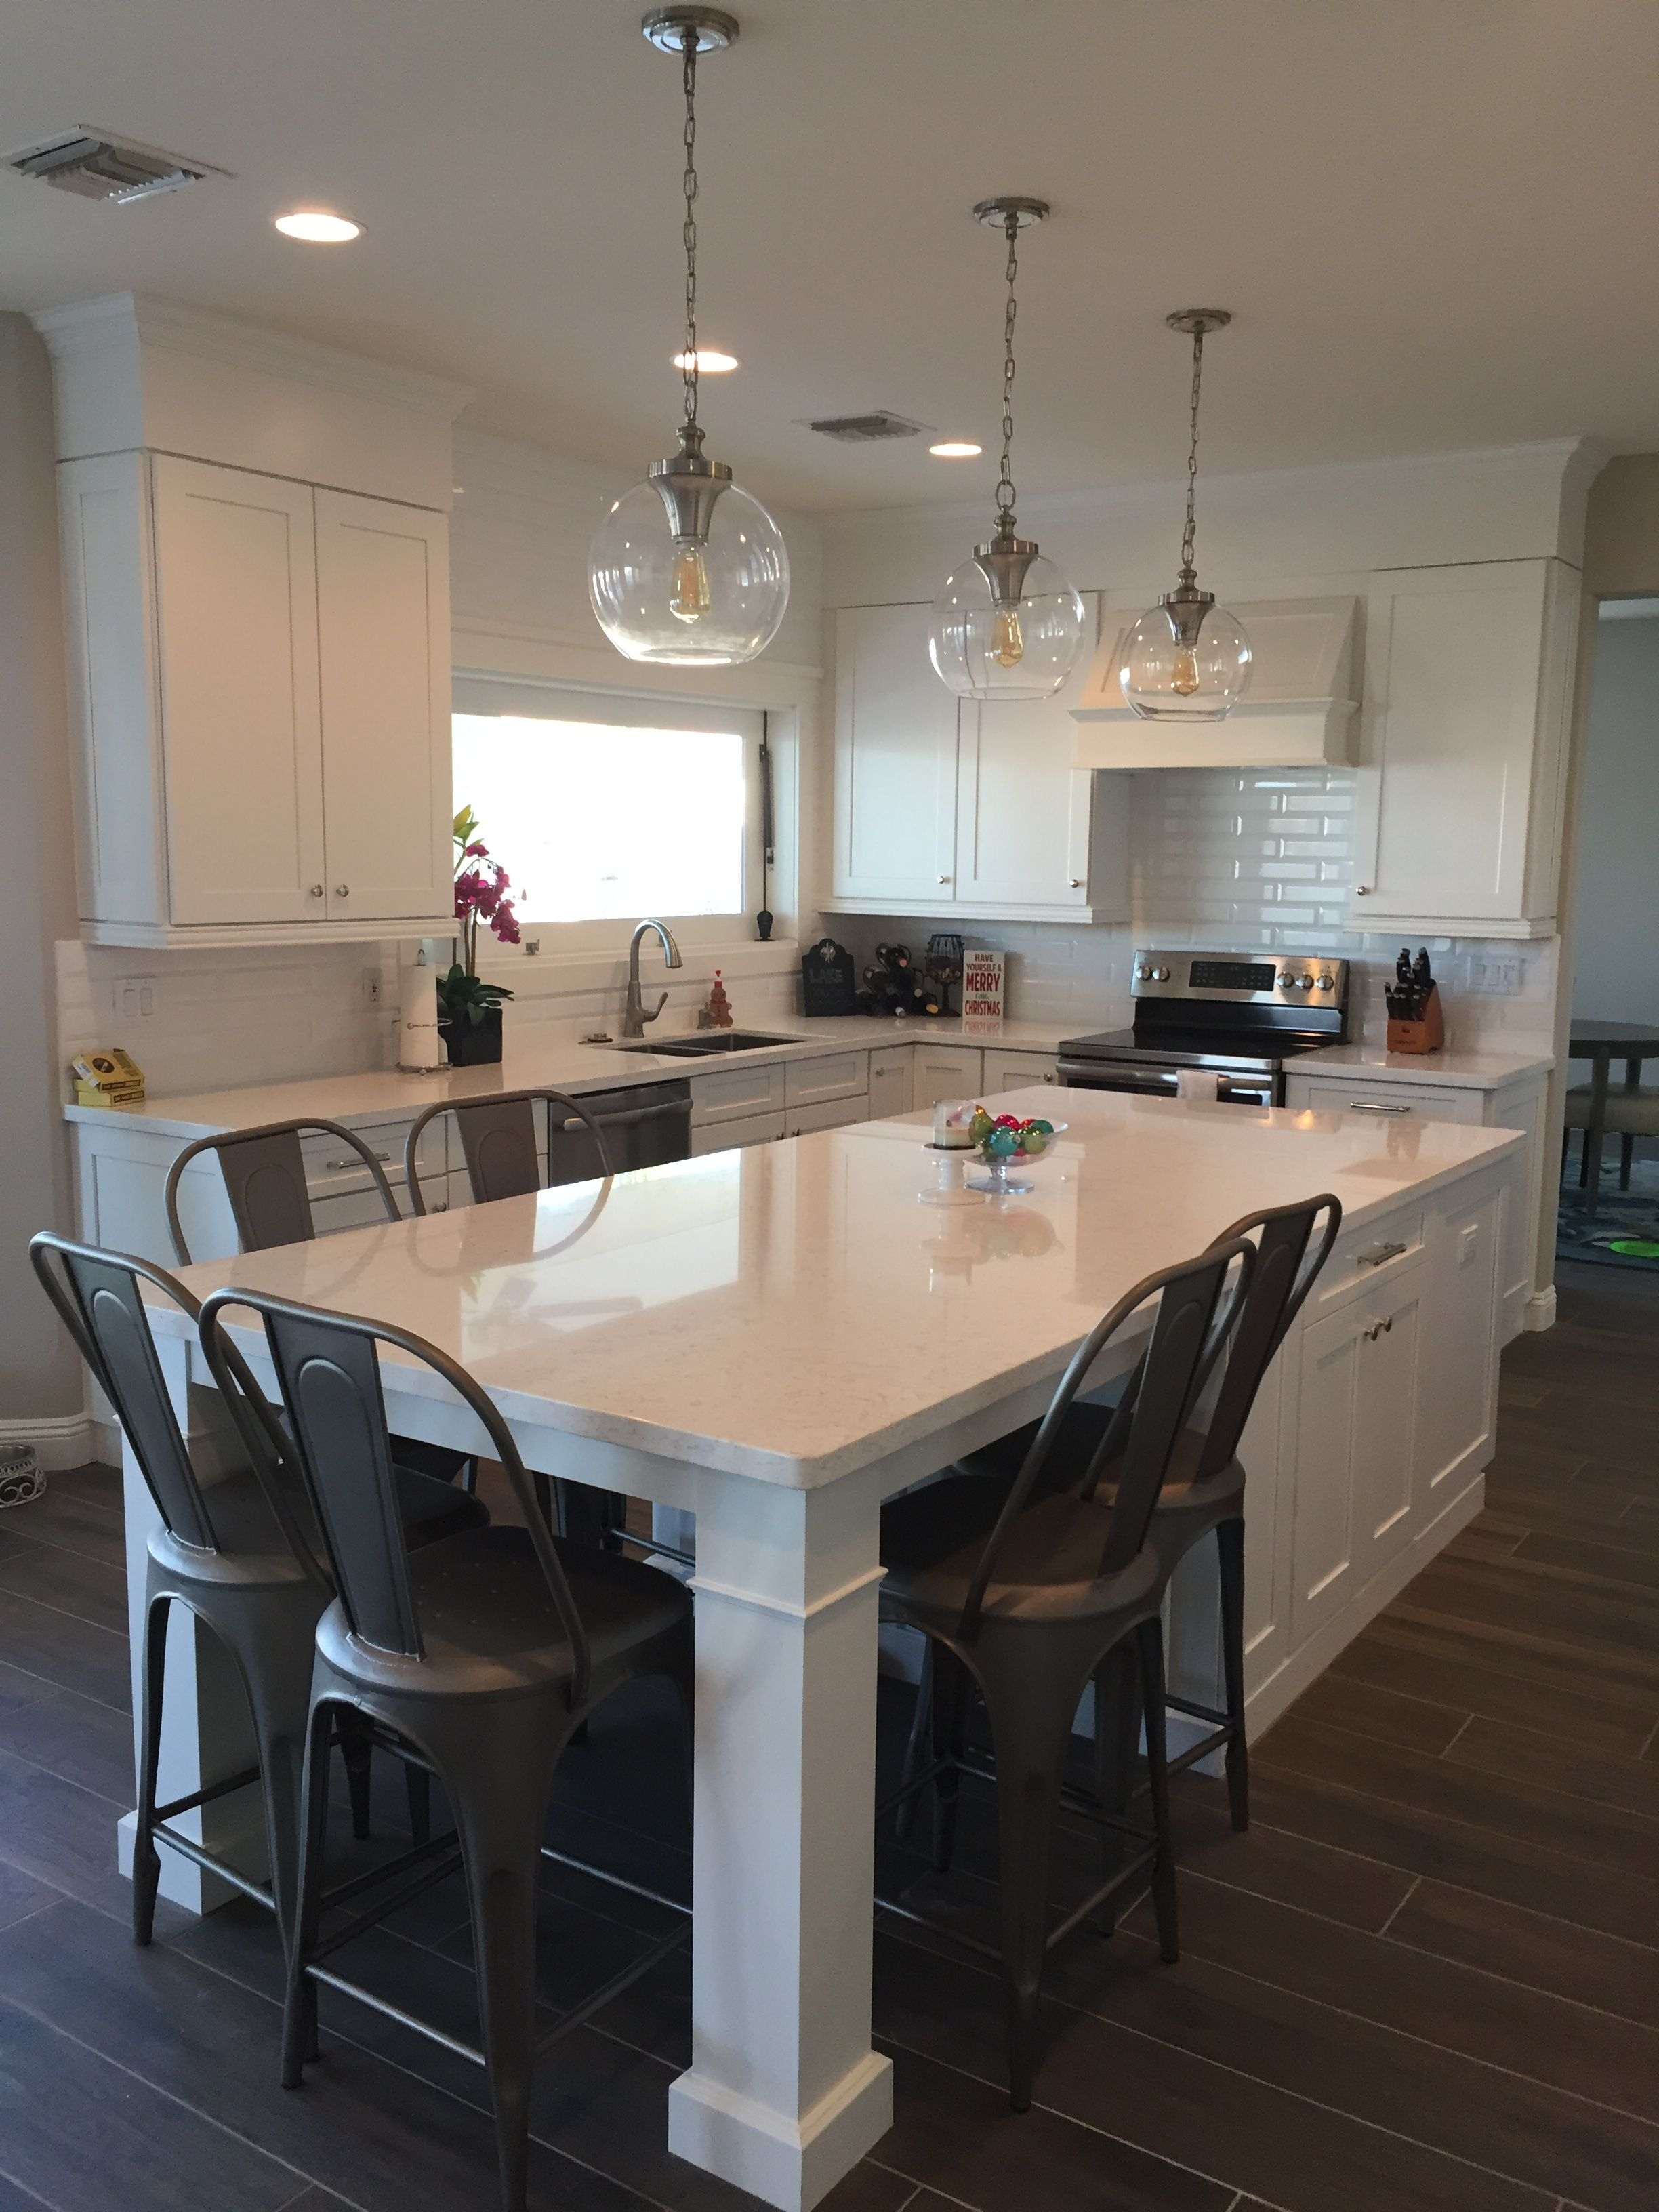 Beautiful Kitchen Island Ideas   White Shaker Waypoint Cabinets Designed By: Nathan  Hoffman Wonder If We Could Do This? Design Ideas